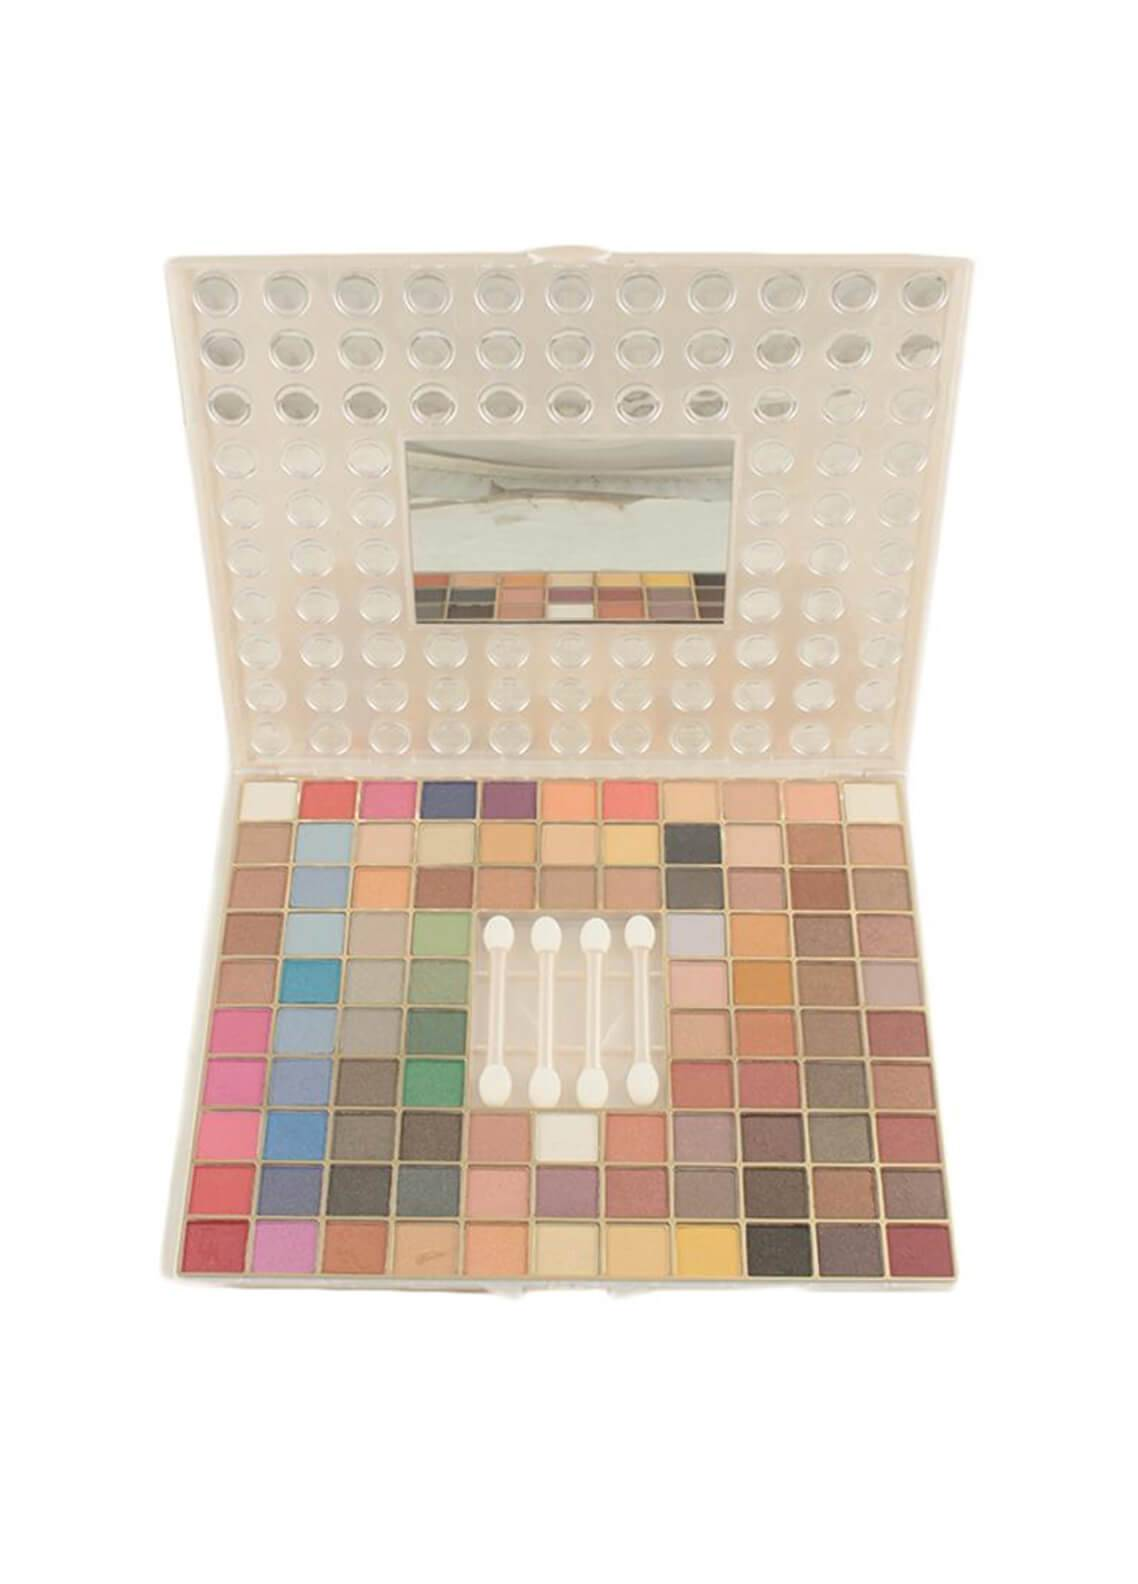 Sophia Asley Eye Shadow kit 98 Colors